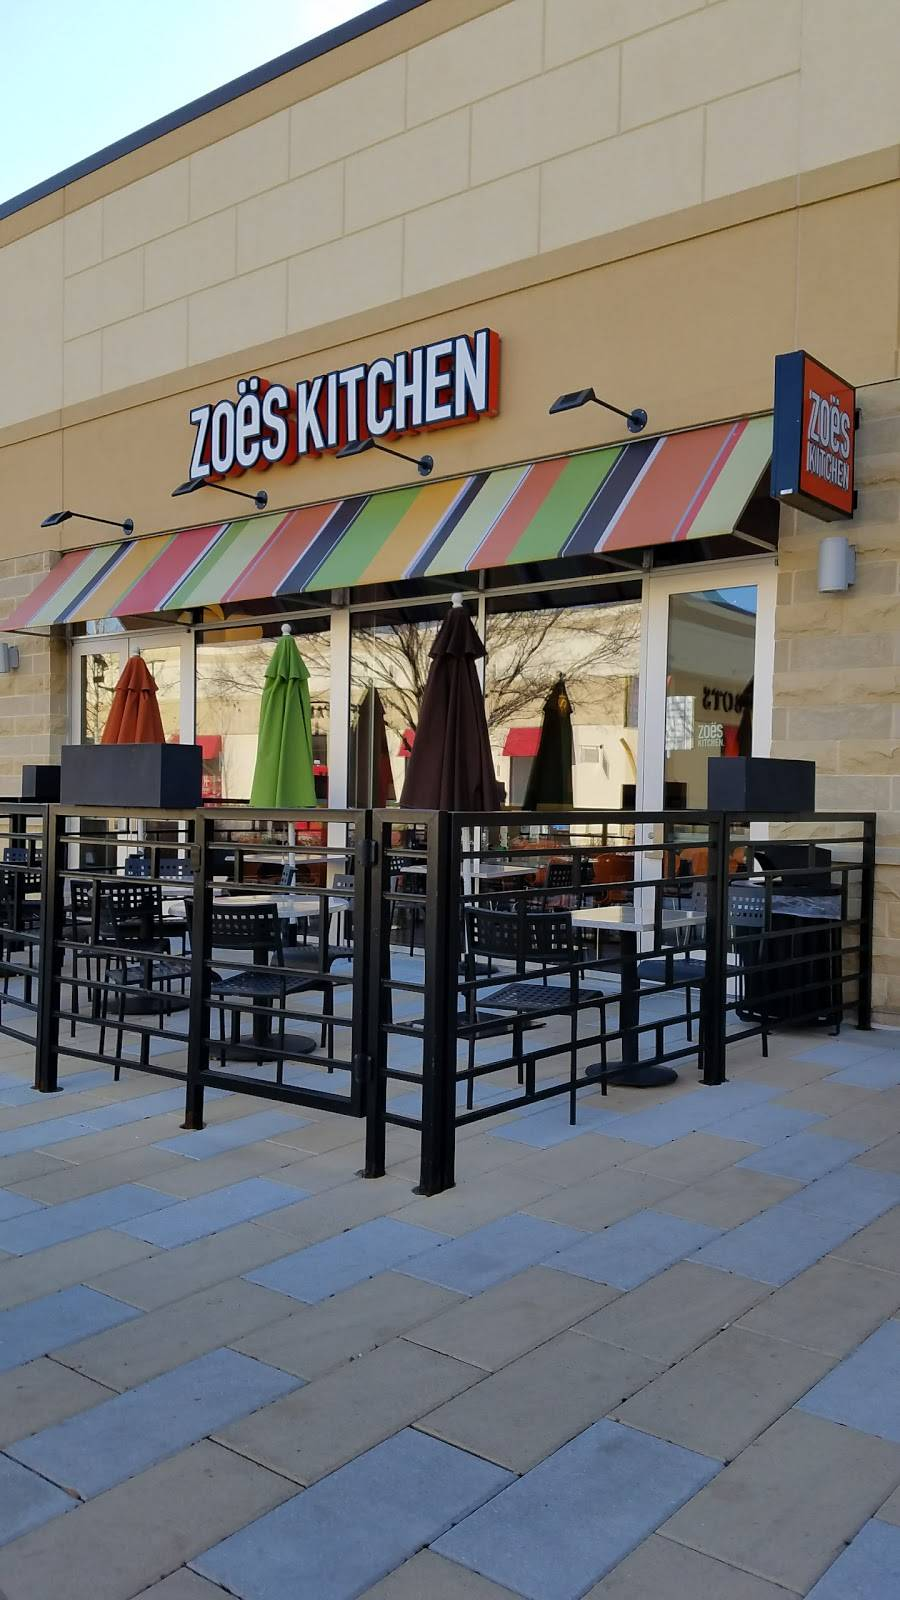 Zoës Kitchen   restaurant   10300 Little Patuxent Pkwy #3140, Columbia, MD 21044, USA   4109970124 OR +1 410-997-0124